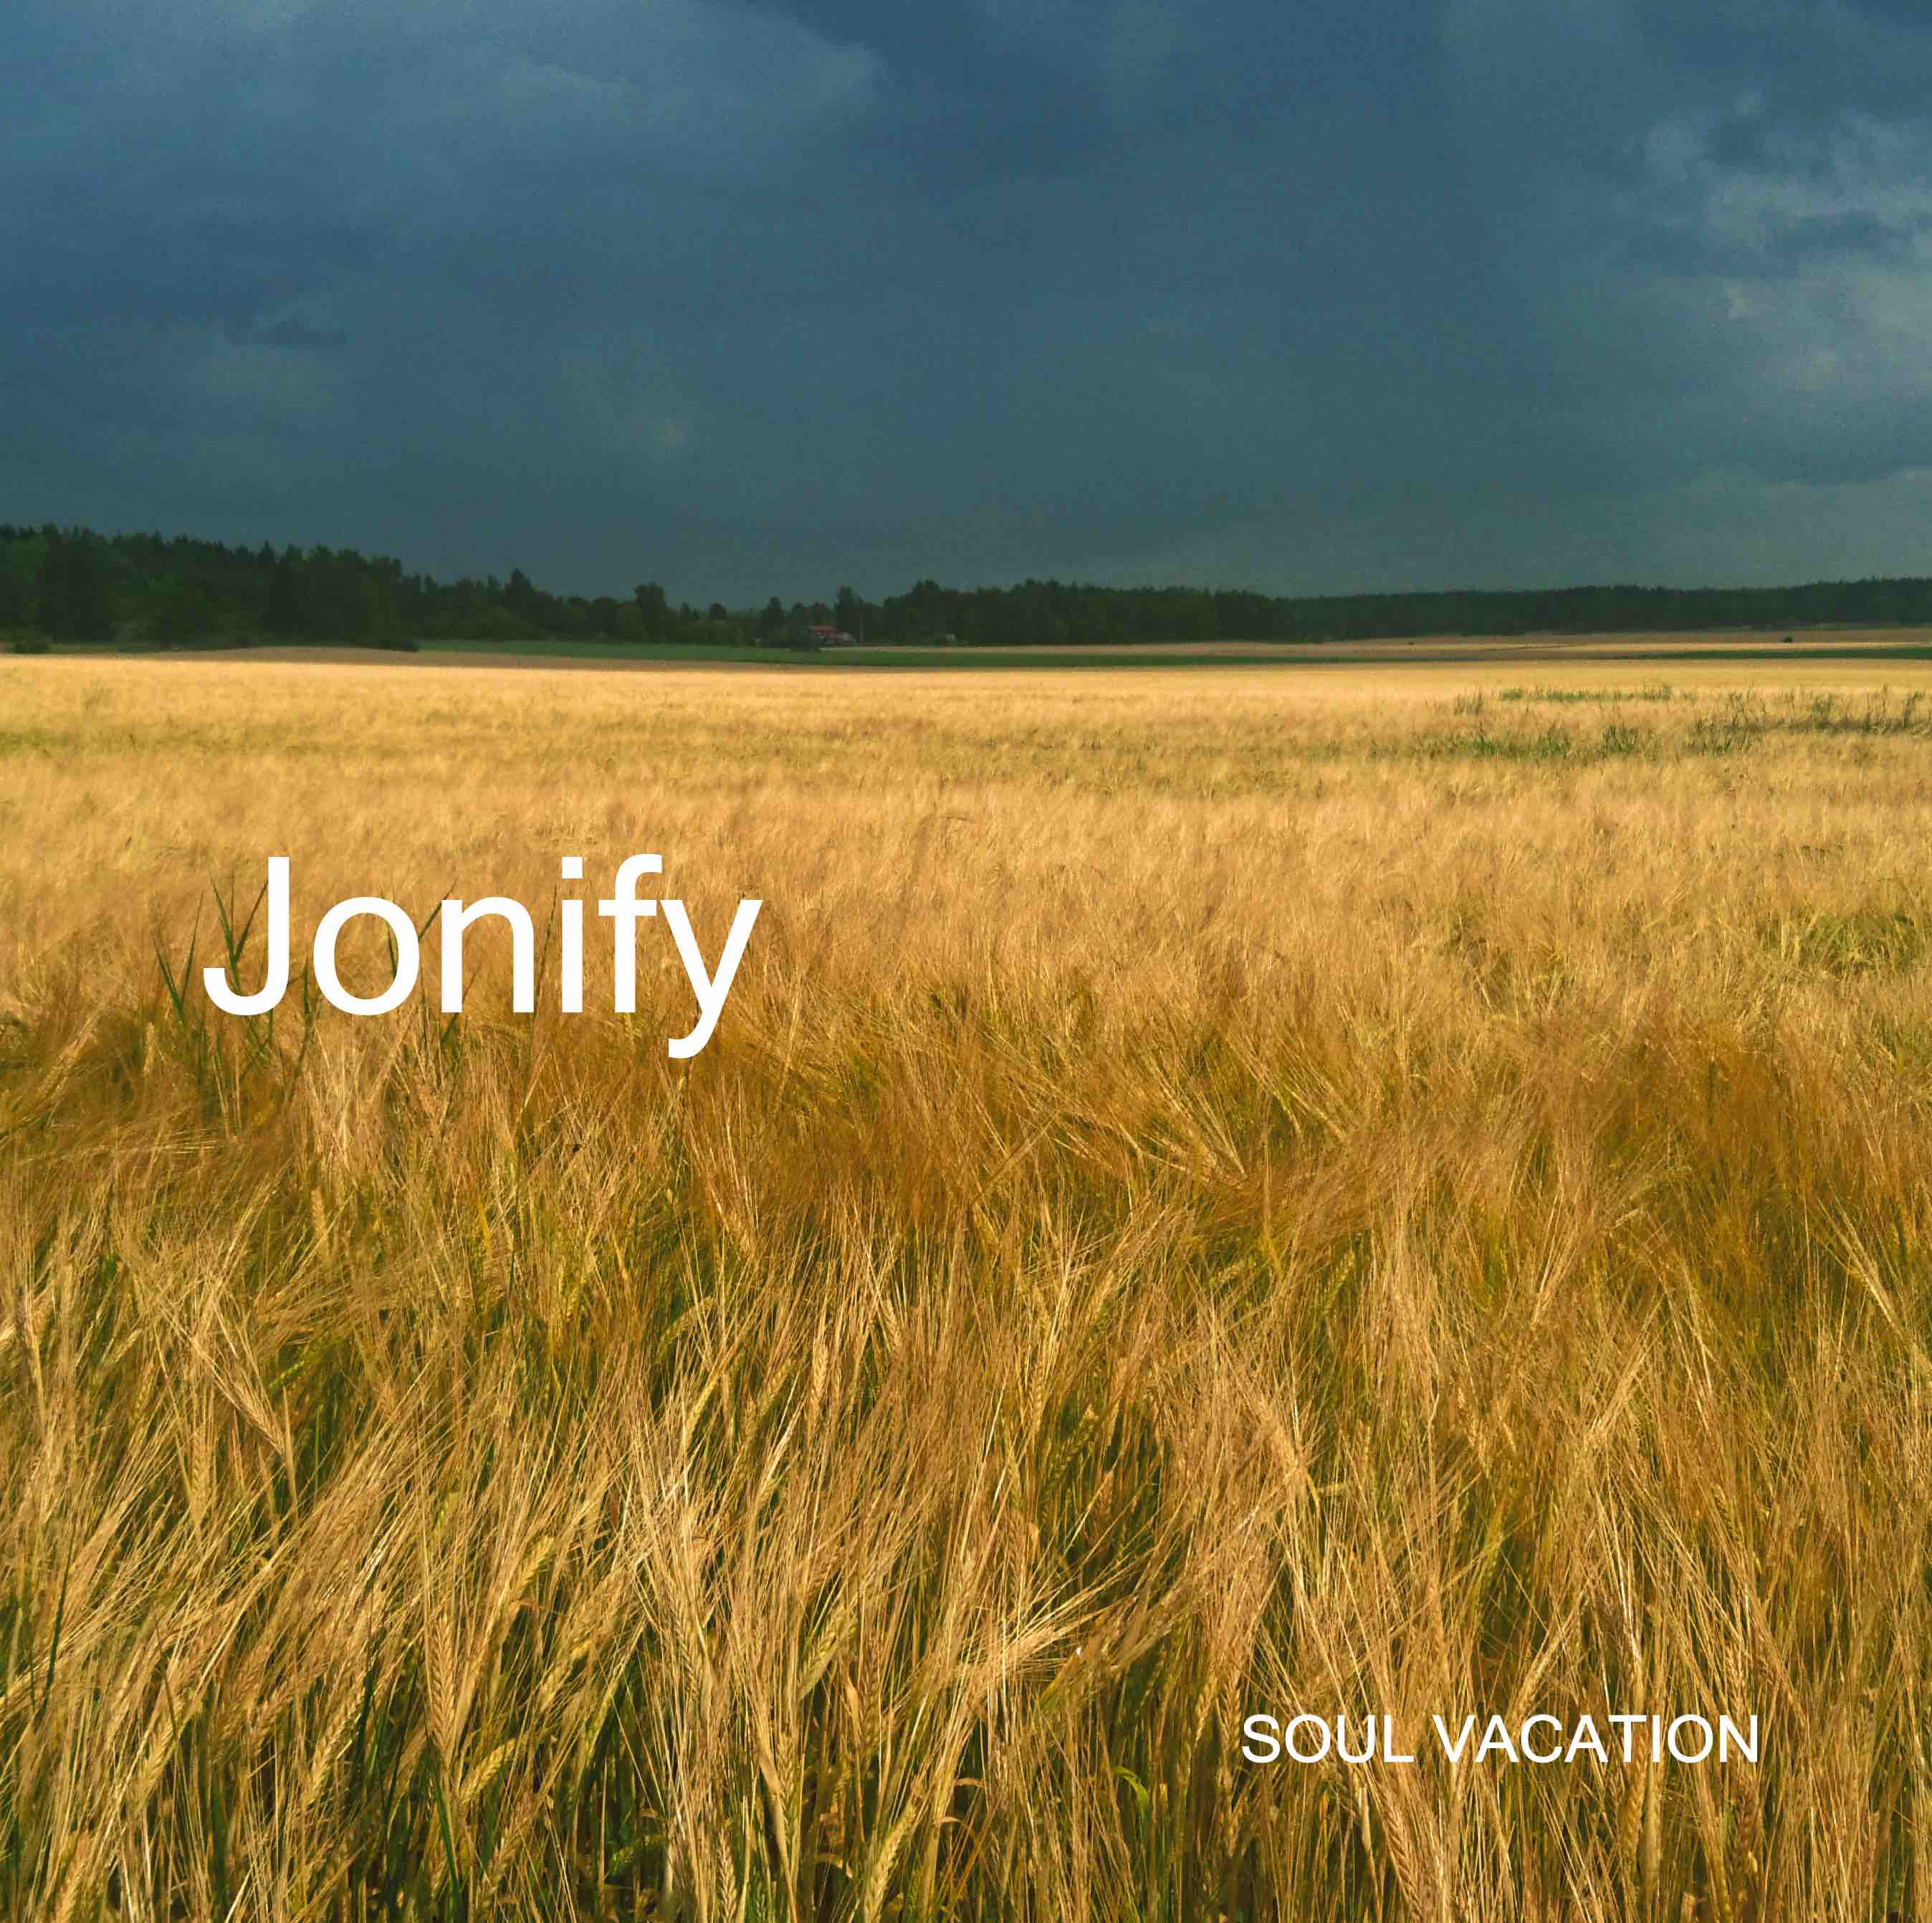 Jonify - Soul Vacation